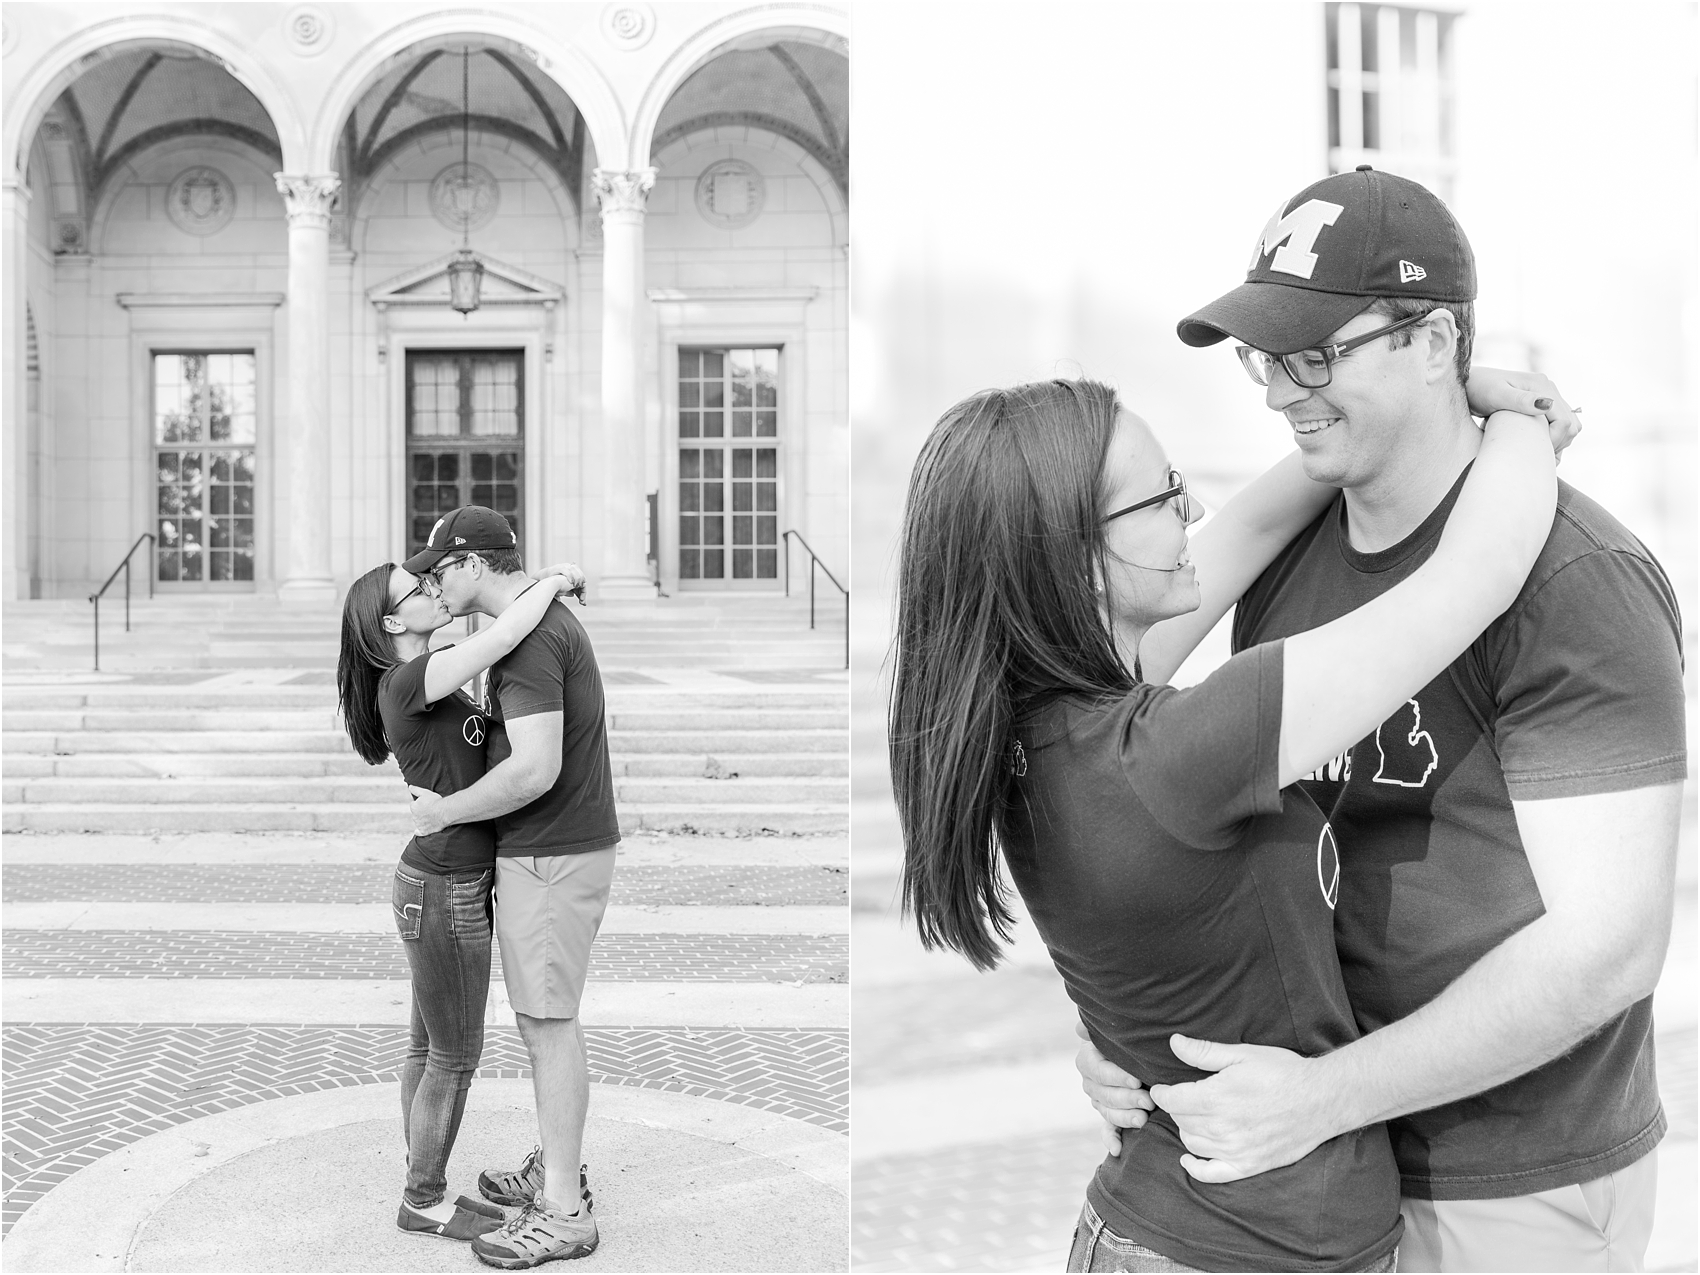 classic-fall-engagement-photos-at-the-university-of-michigan-in-ann-arbor-mi-by-courtney-carolyn-photography_0016.jpg